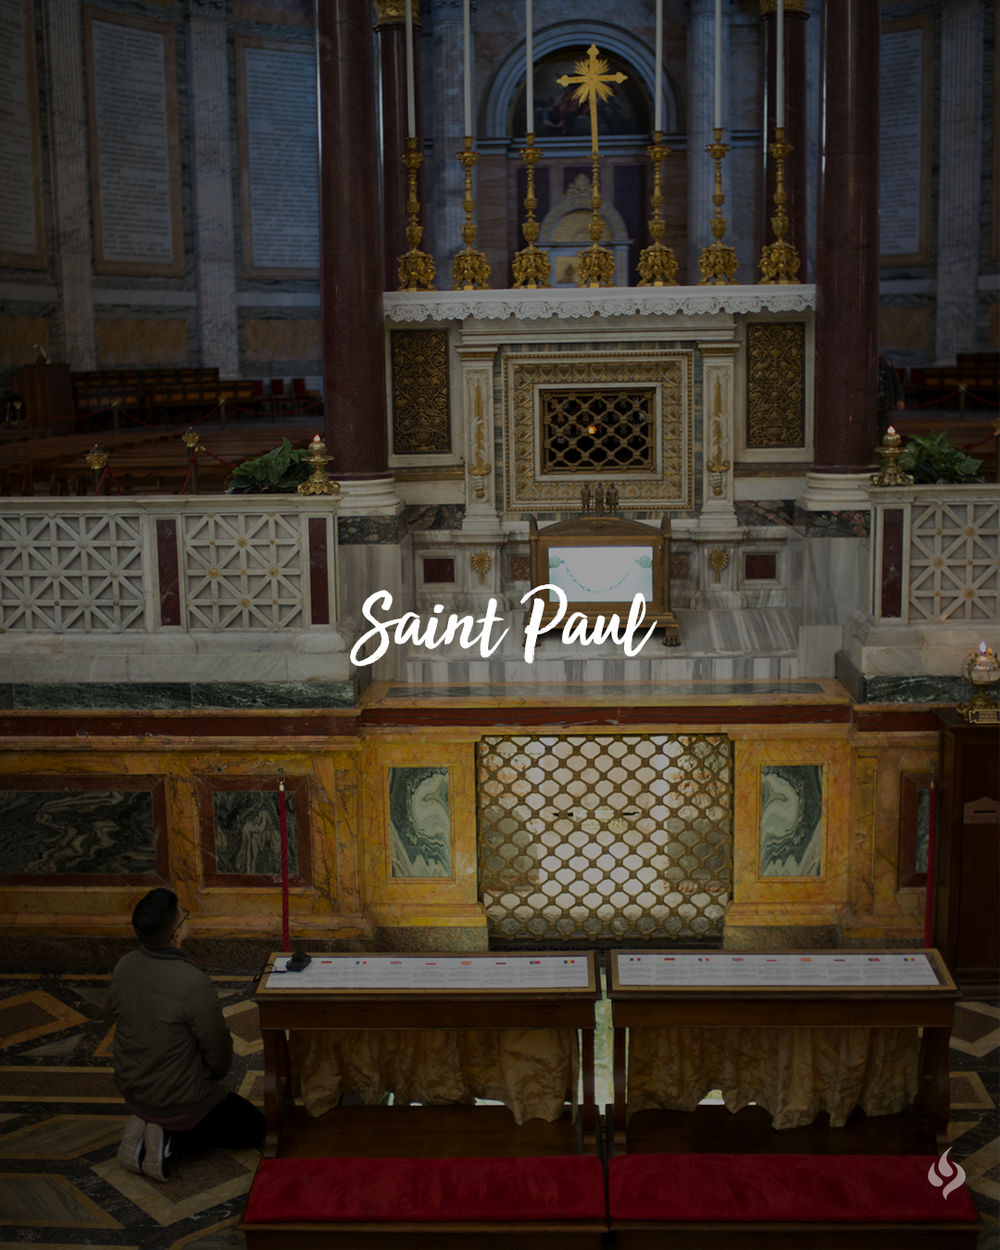 Tomb of Saint Paul  at the Basilica of Saint Paul Outside the Walls, Rome, Italy